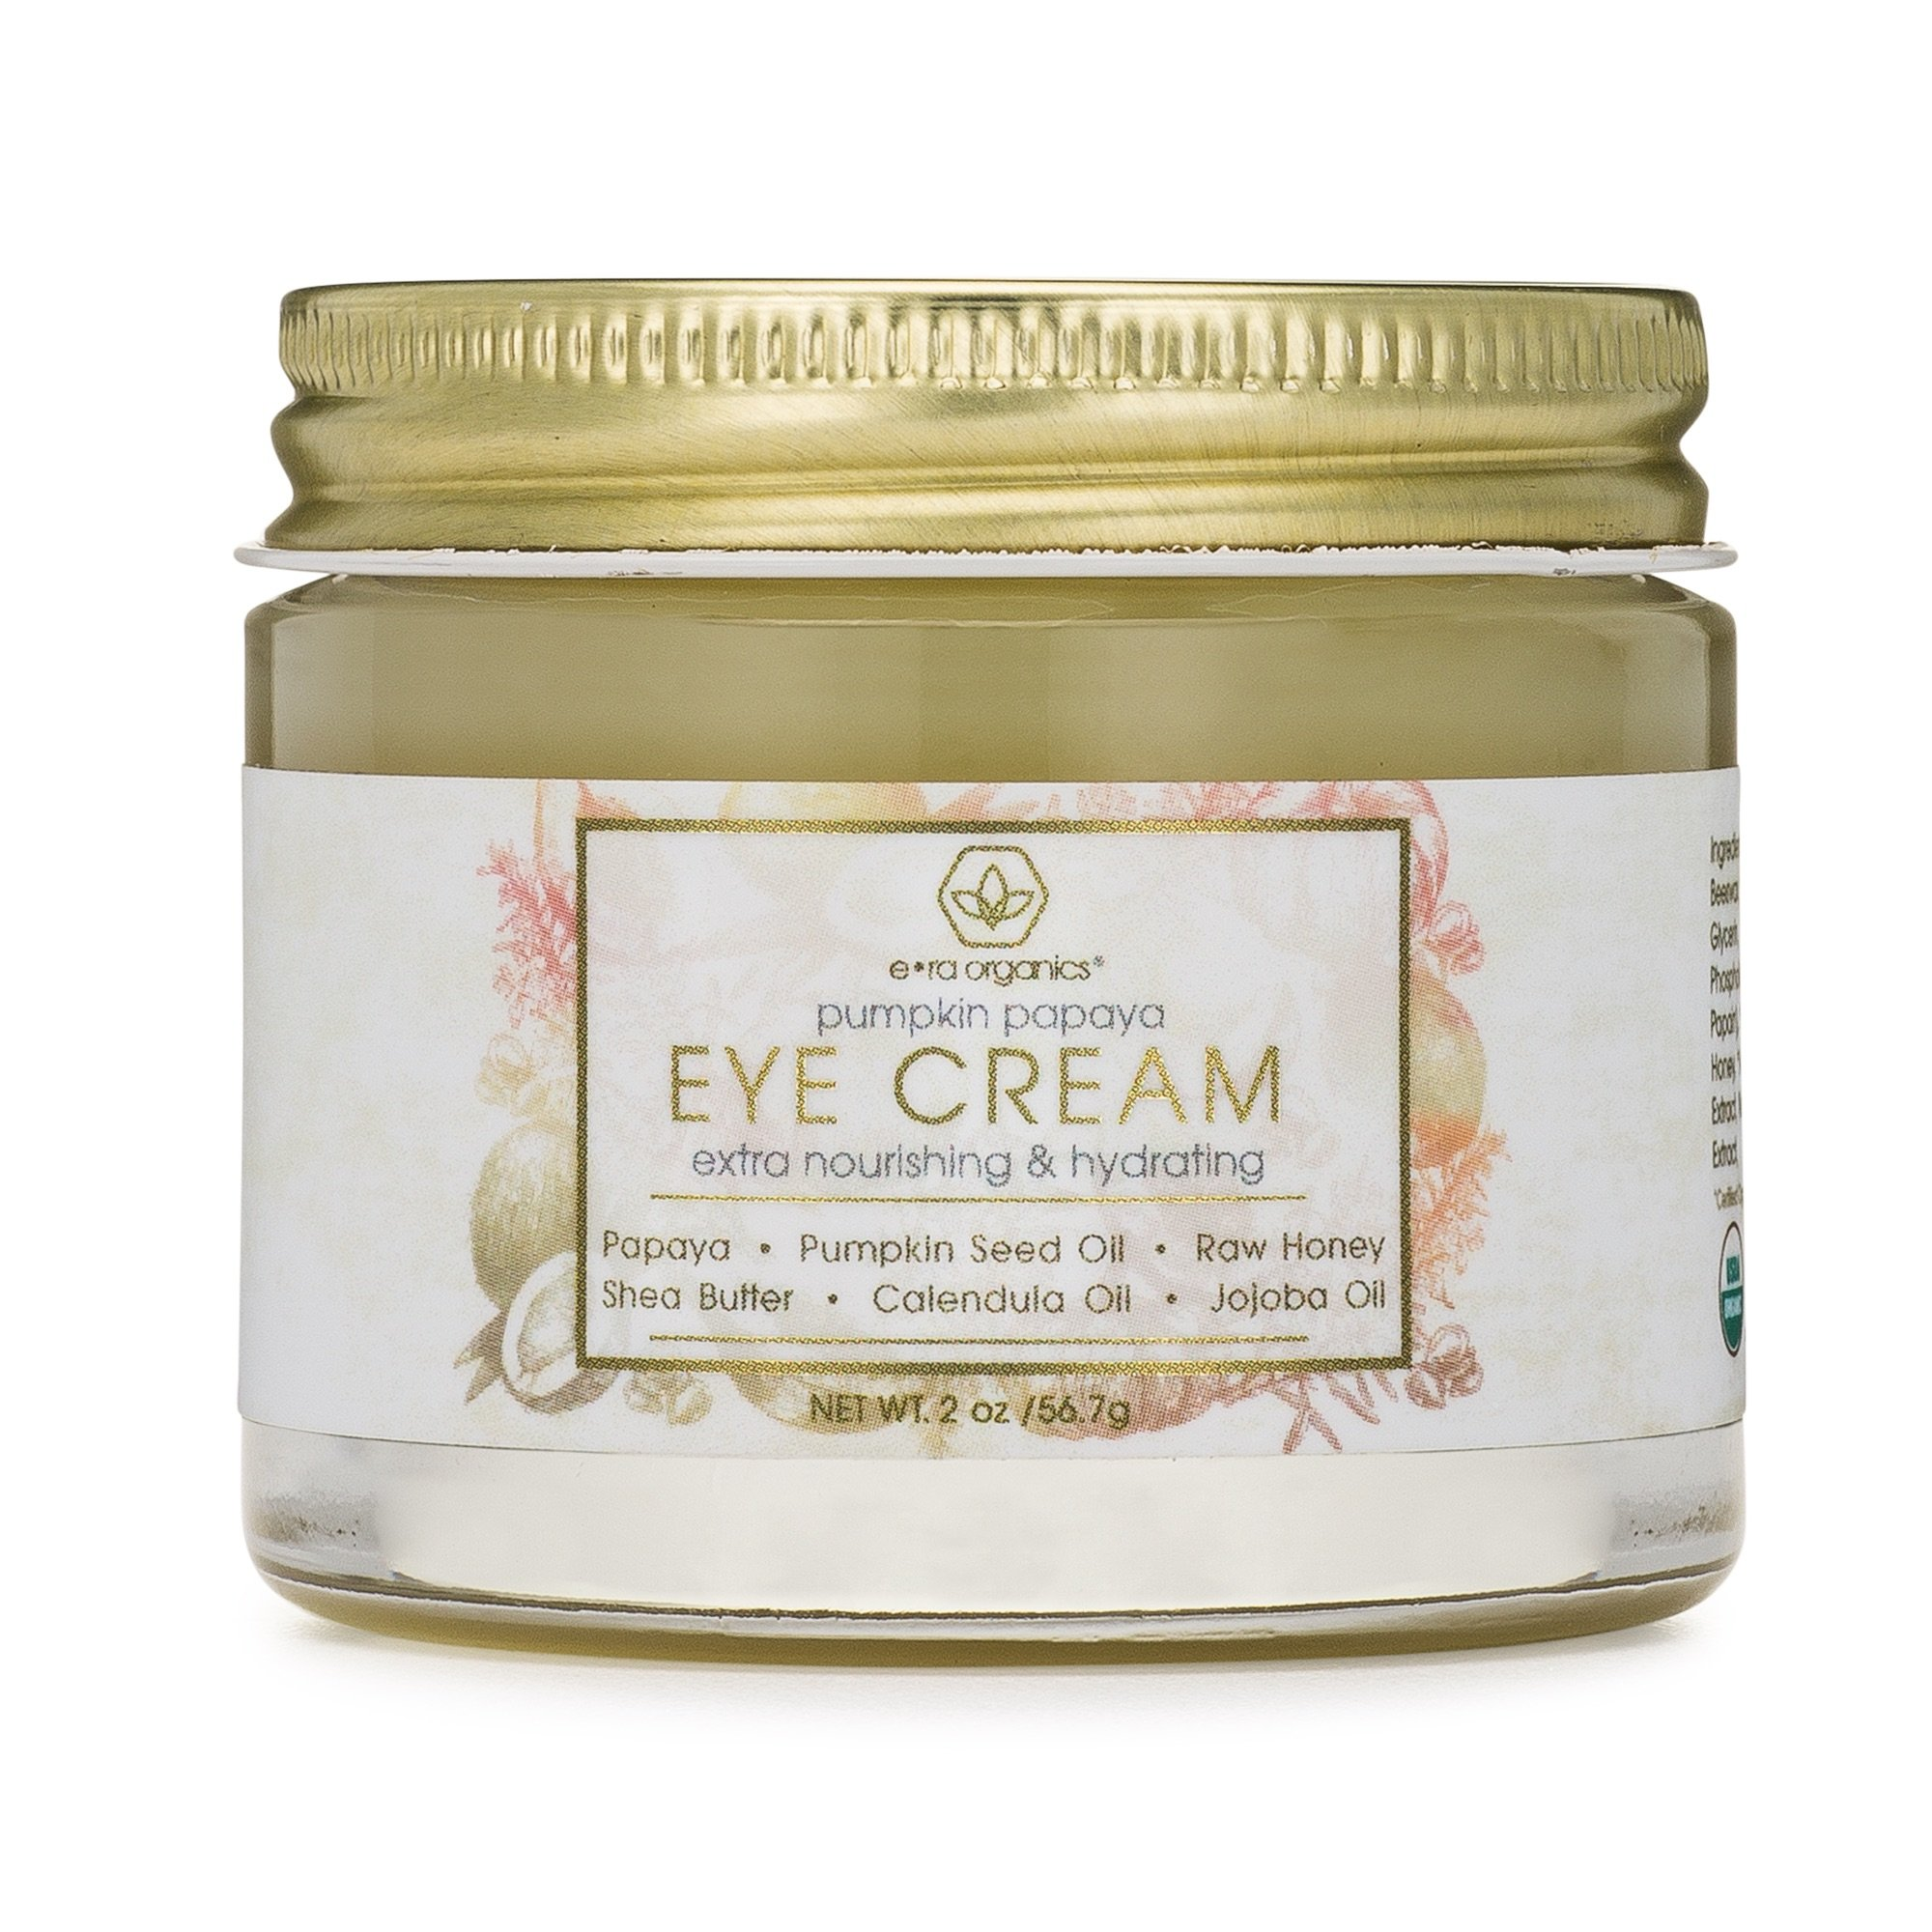 Rejuvenating Eye Cream (2oz.) Extra Nourishing & Moisturizing USDA Organic Anti Aging Eye Treatment Balm for Dark Circles, Under Eye Bags, Puffiness & Wrinkles with Jojoba Oil, Argan Oil & More by Era Organics (Image #1)